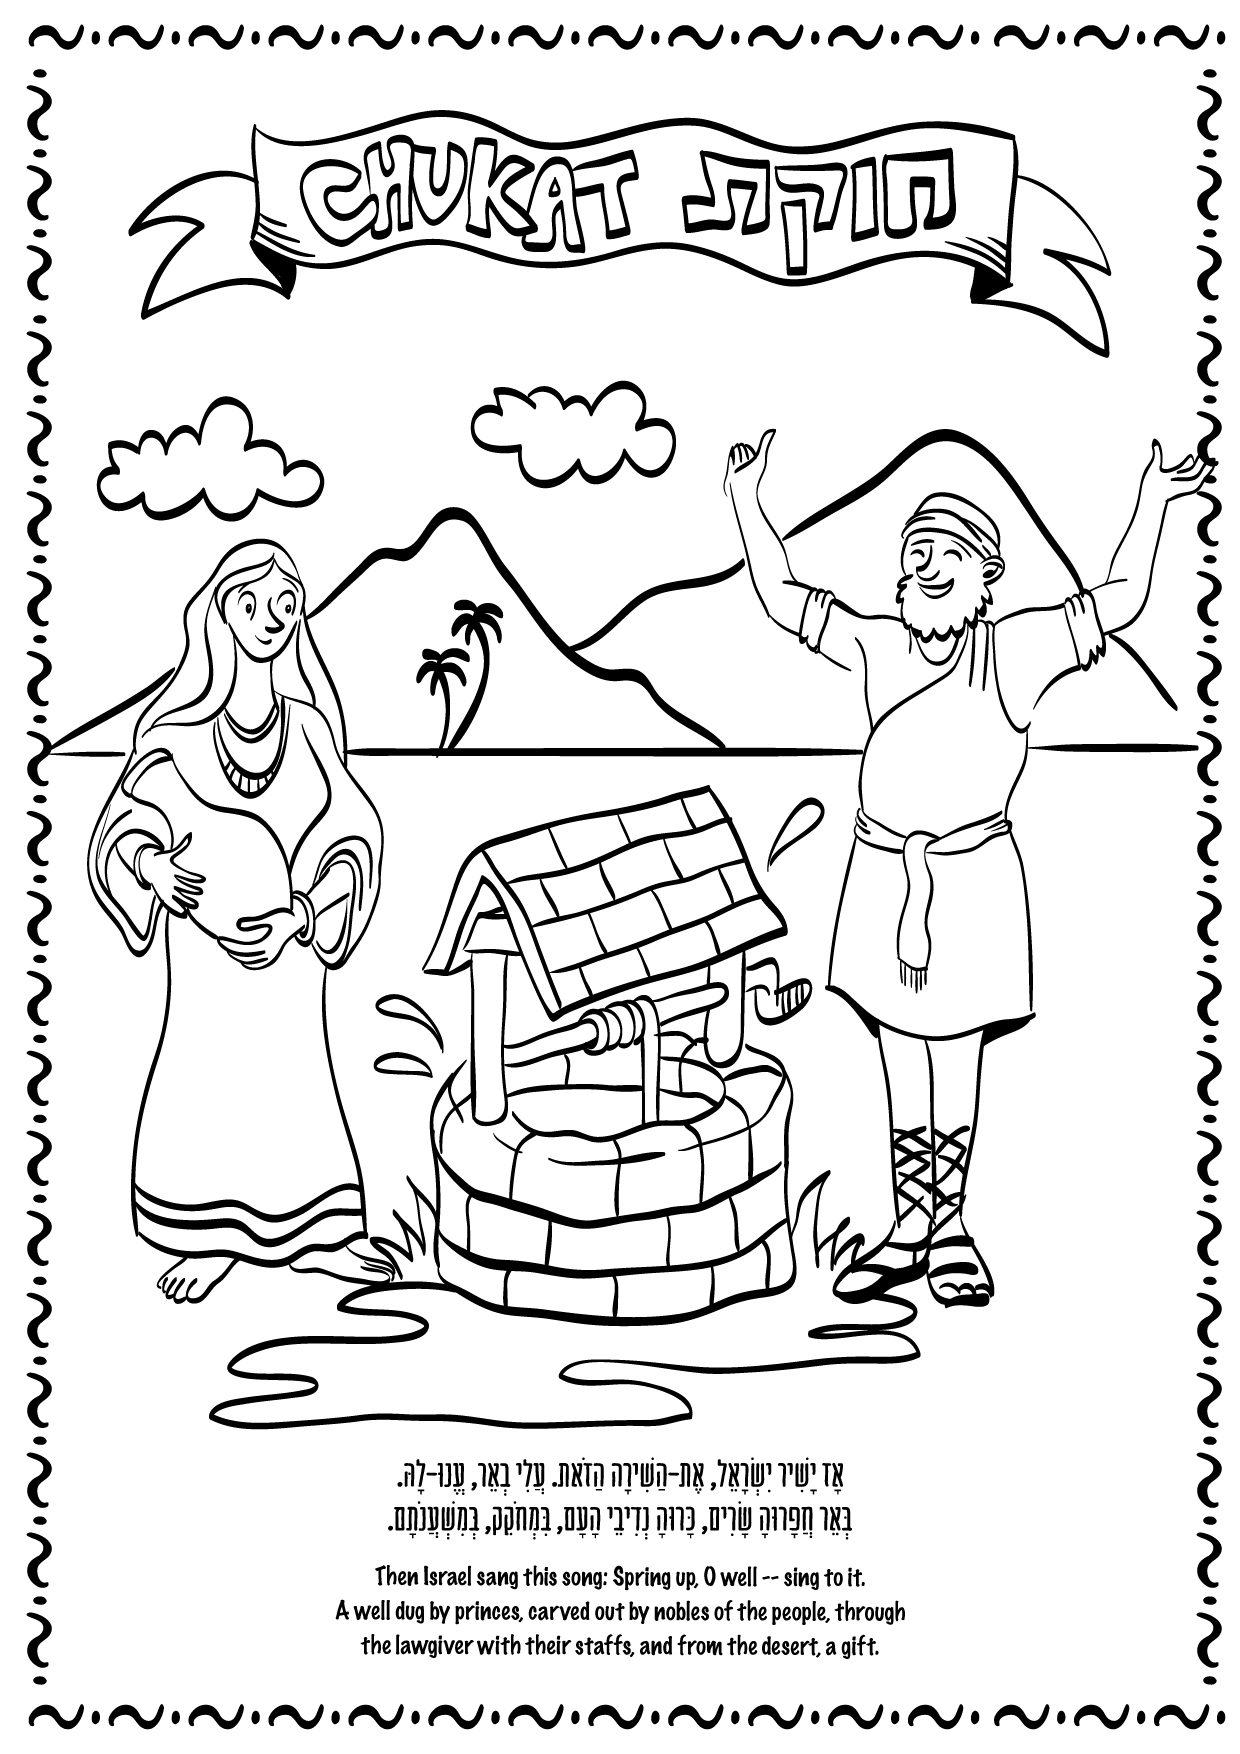 One parsha at a time, coloring pages aim to make Torah